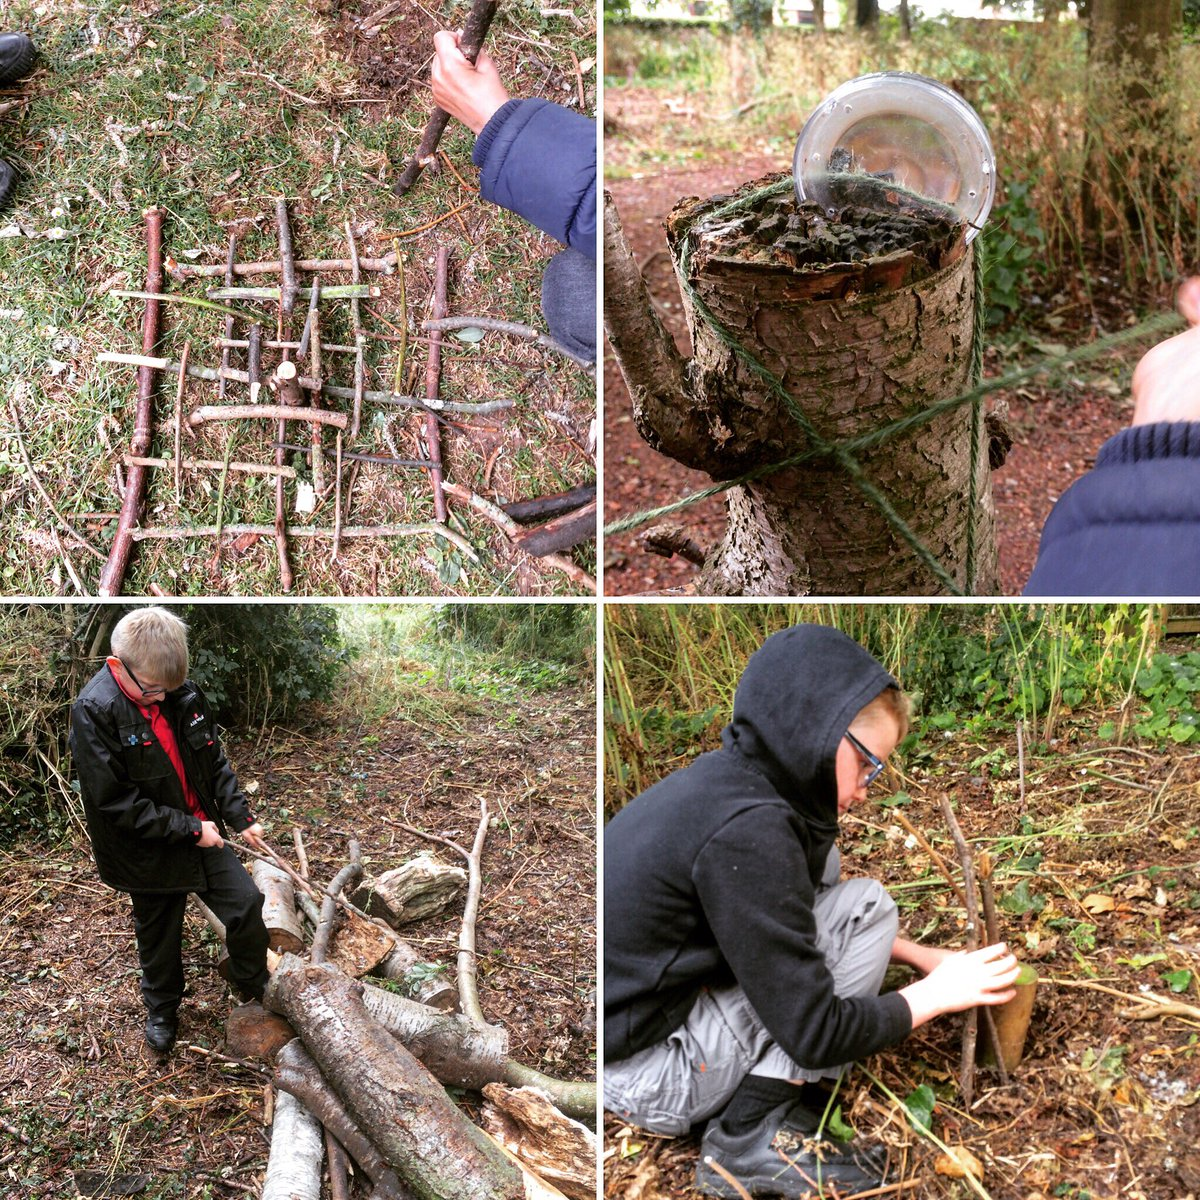 Individual adventures, great teamwork and wonderful achievements today at @HillcrestAnston #forestschool @CultureLeisure #forestschools <br>http://pic.twitter.com/wCY6LEdktG